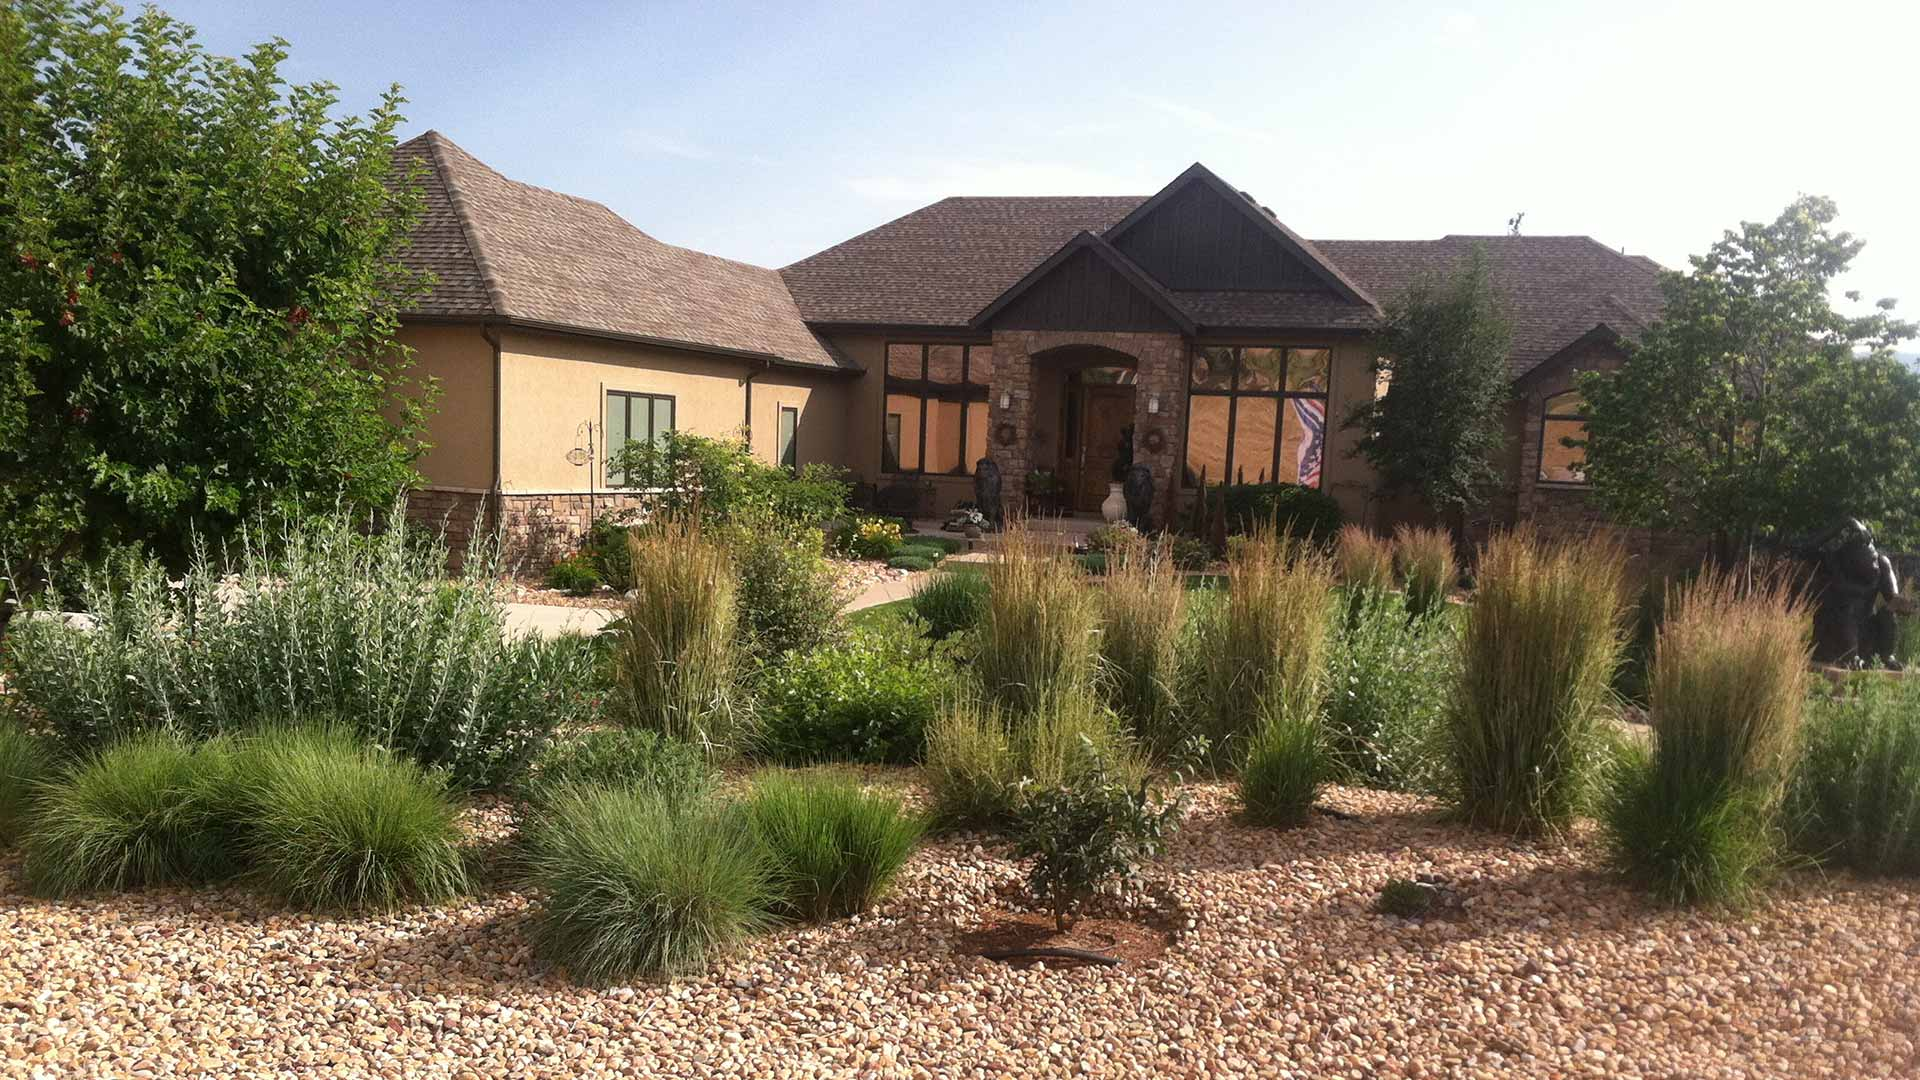 New plants installed in a Fort Collins, CO property's yard.